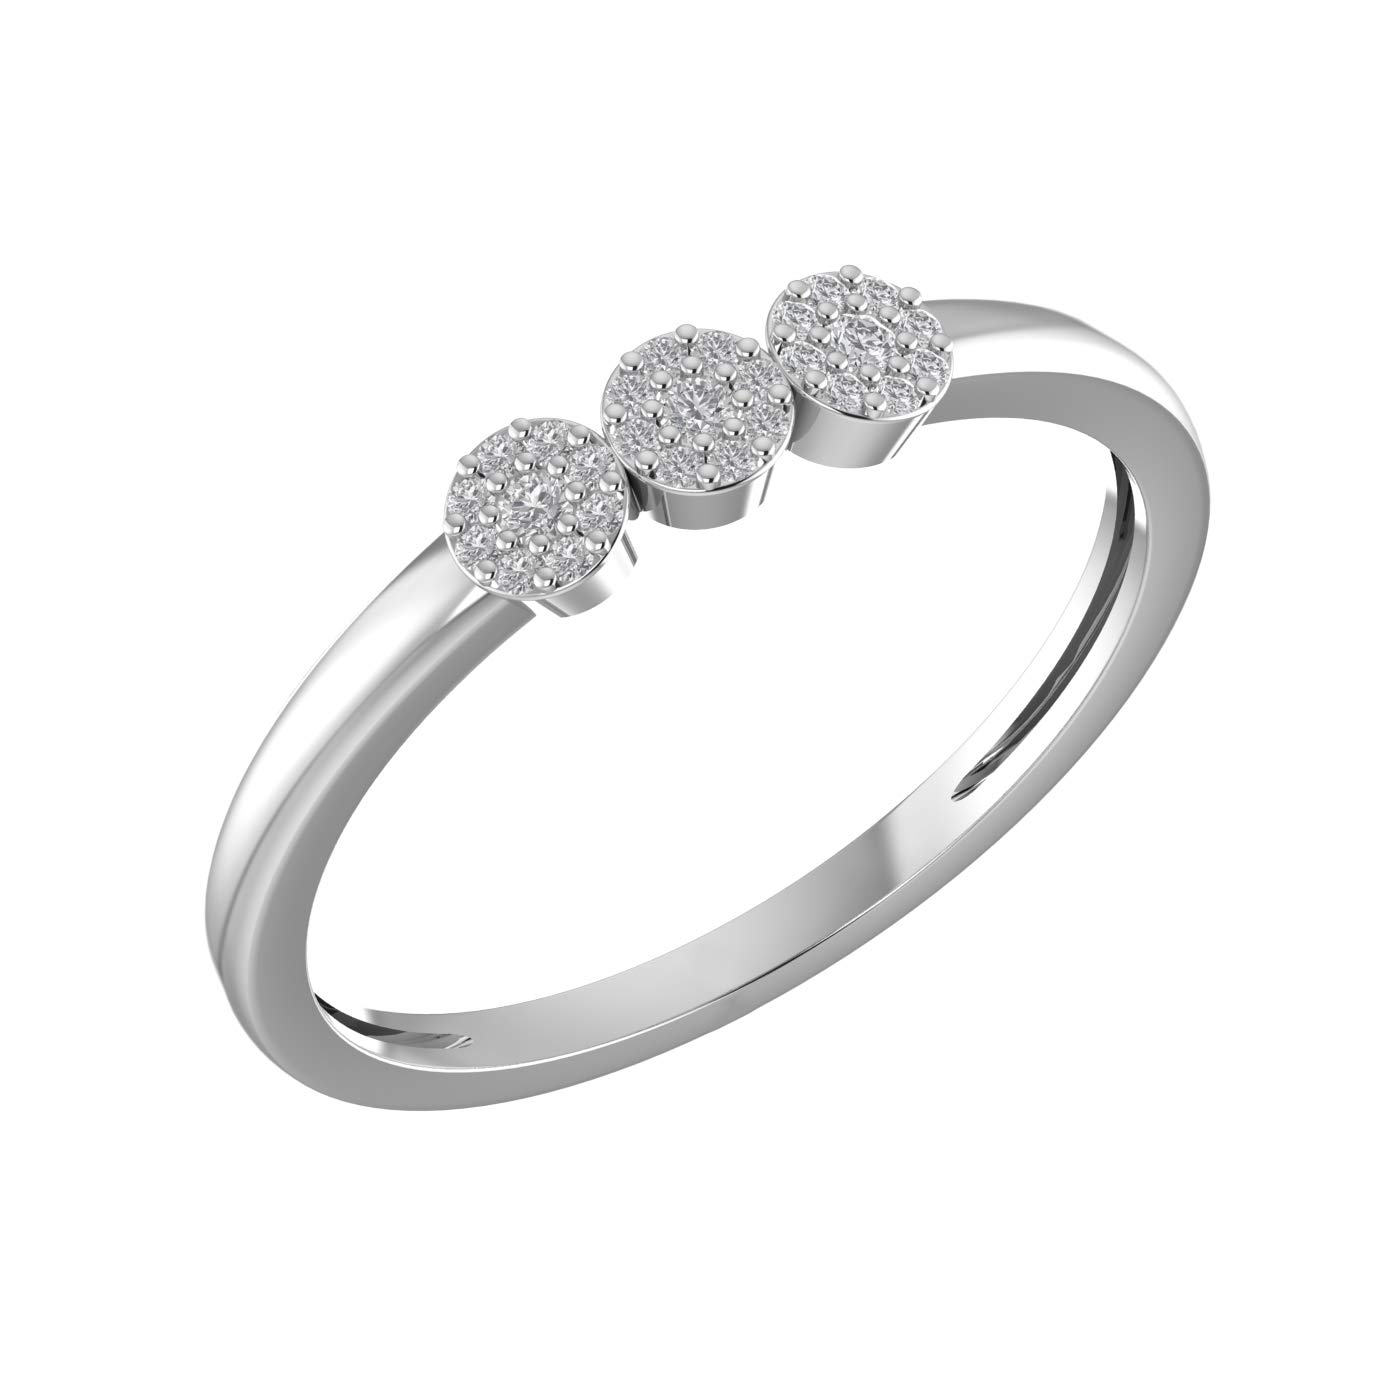 Amayra 0.09 CTW Diamond Ring - 27 Natural Round Stones in 925 Sterling Silver- Brilliant Cut US Size 4 (Color-GH Clarity-VS-SI)-Perfect for Bridal Promise Ring, Wedding Anniversary or Beautiful Gift